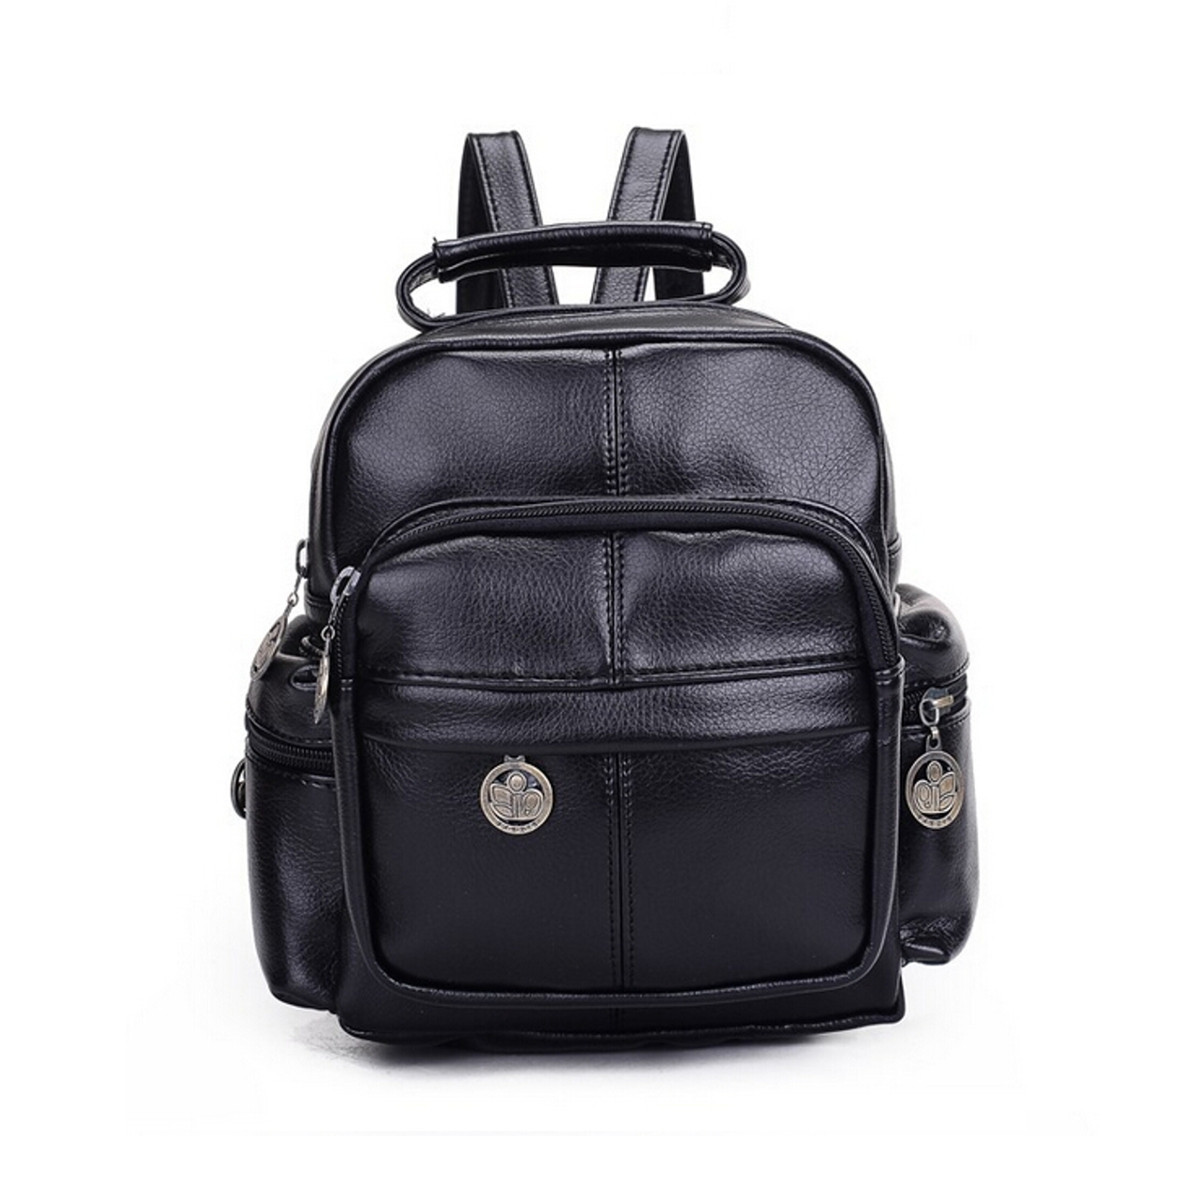 A Backpack Purse is the perfect answer to wearing a purse hands-free. A Backpack Purse for Women and a Backpack Purse for Juniors can be found at Macy's.